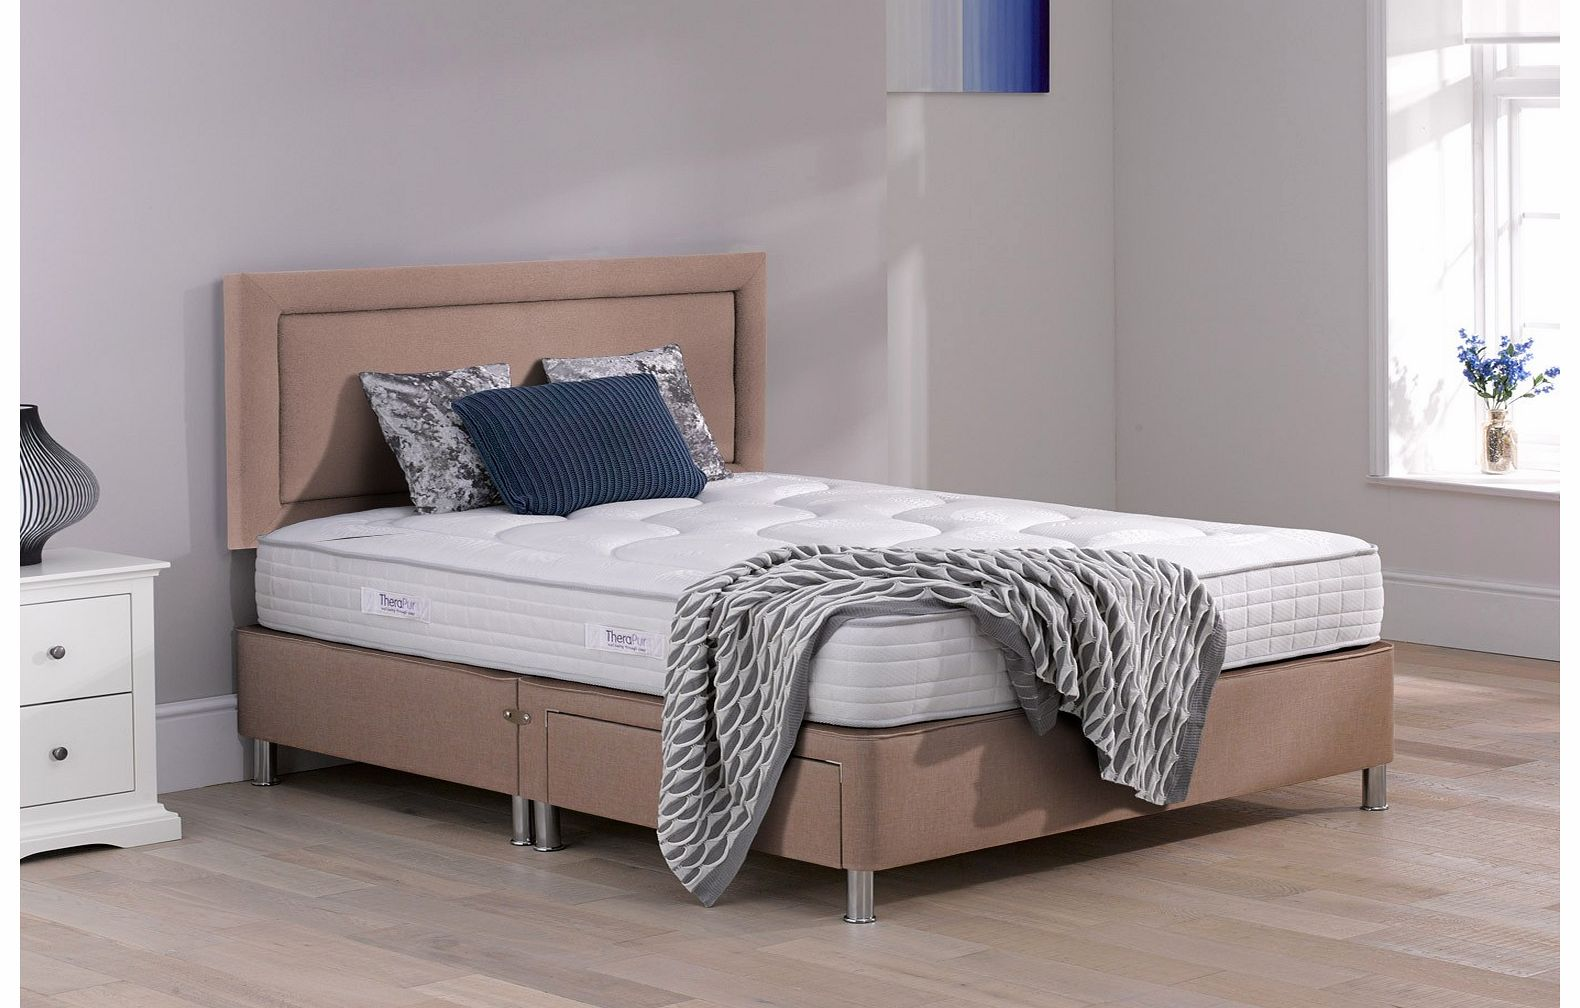 4 0 small double divan beds for Small double divan bed